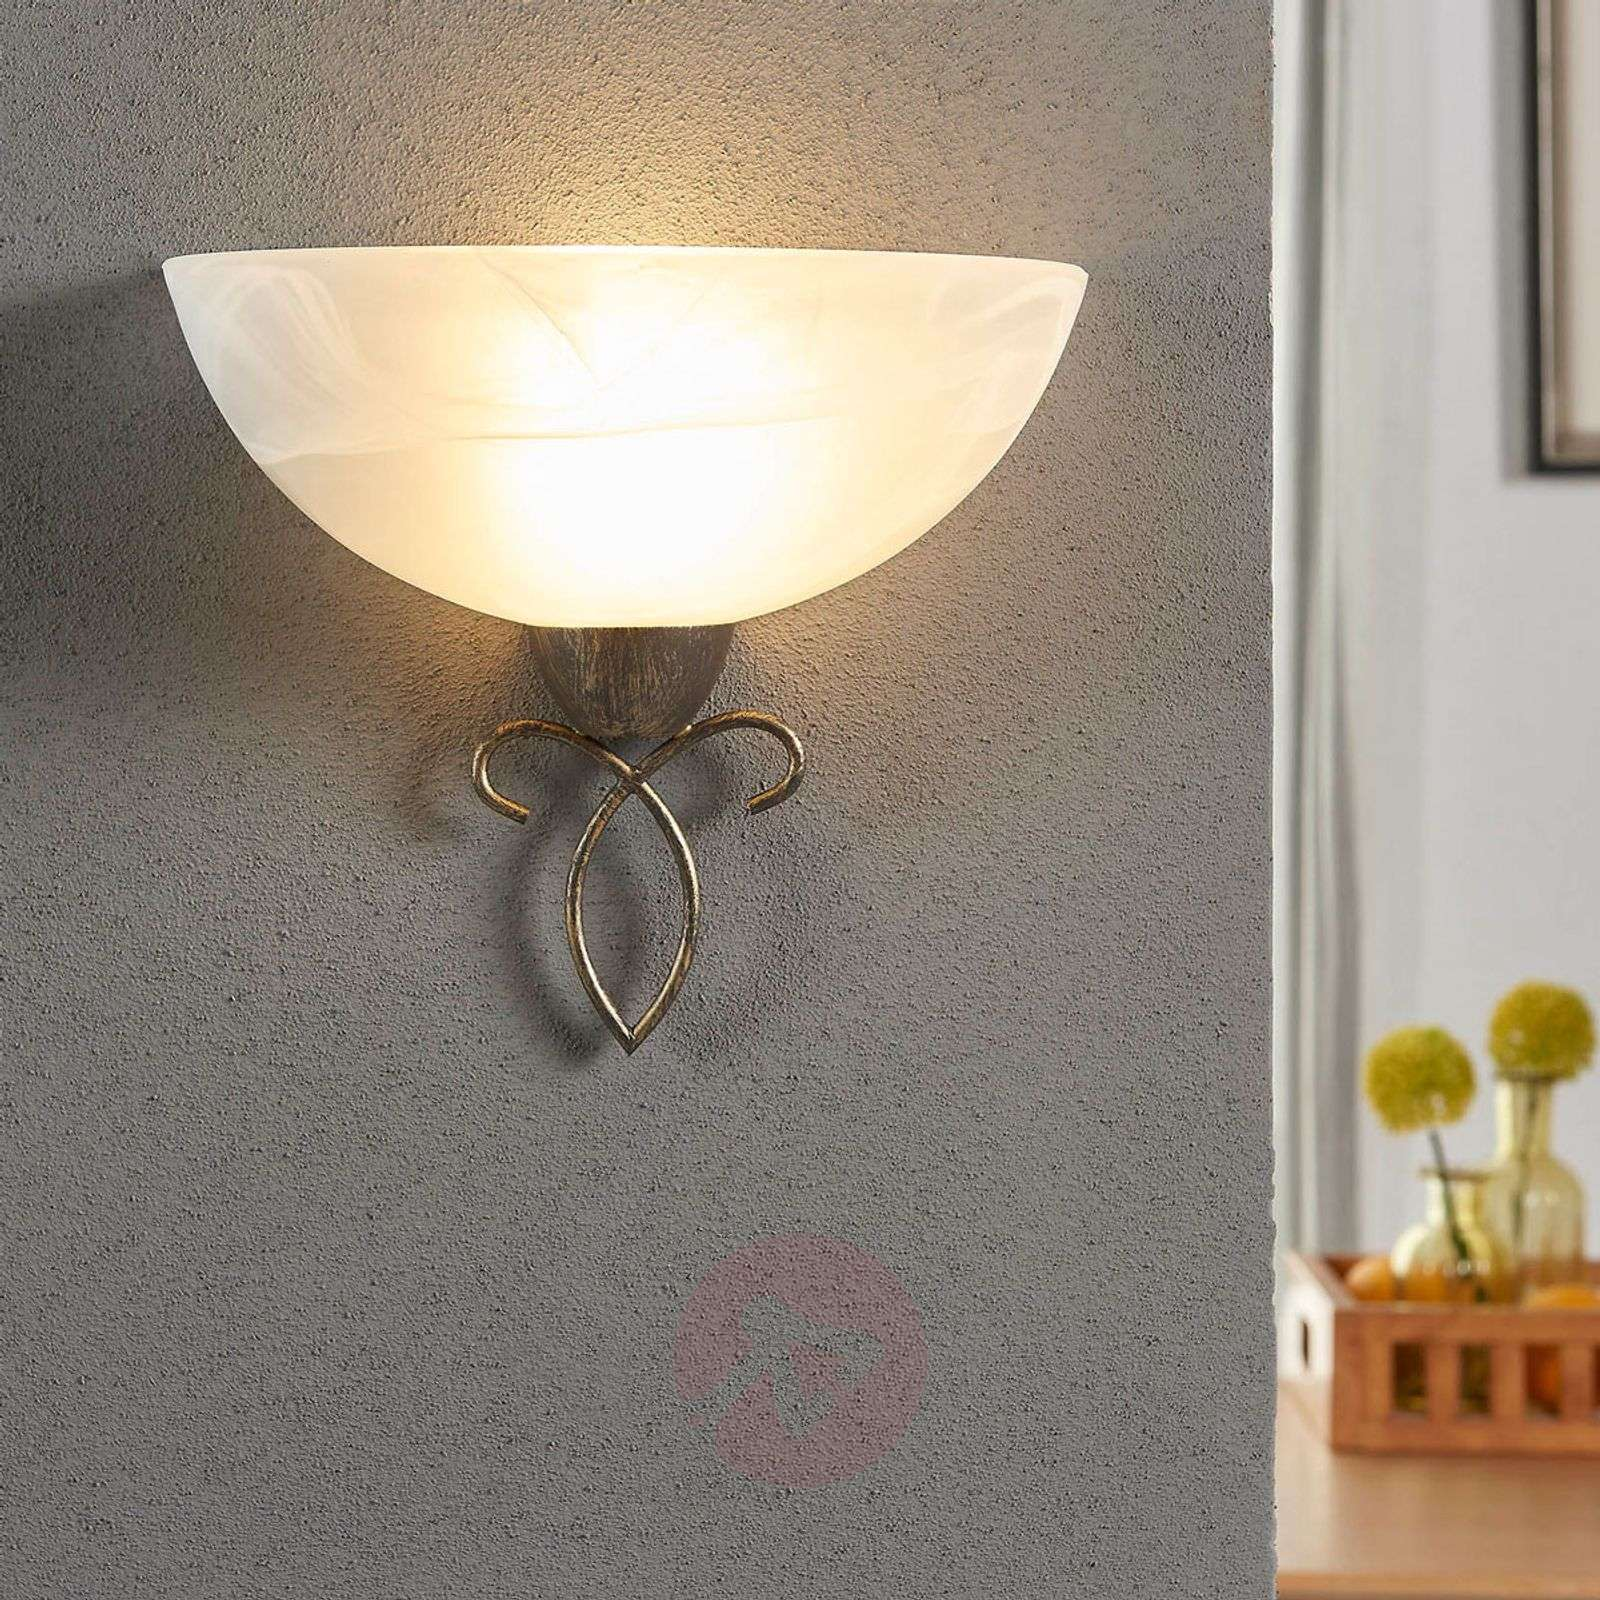 Wall light Mohija with a romantic look-9620869-02